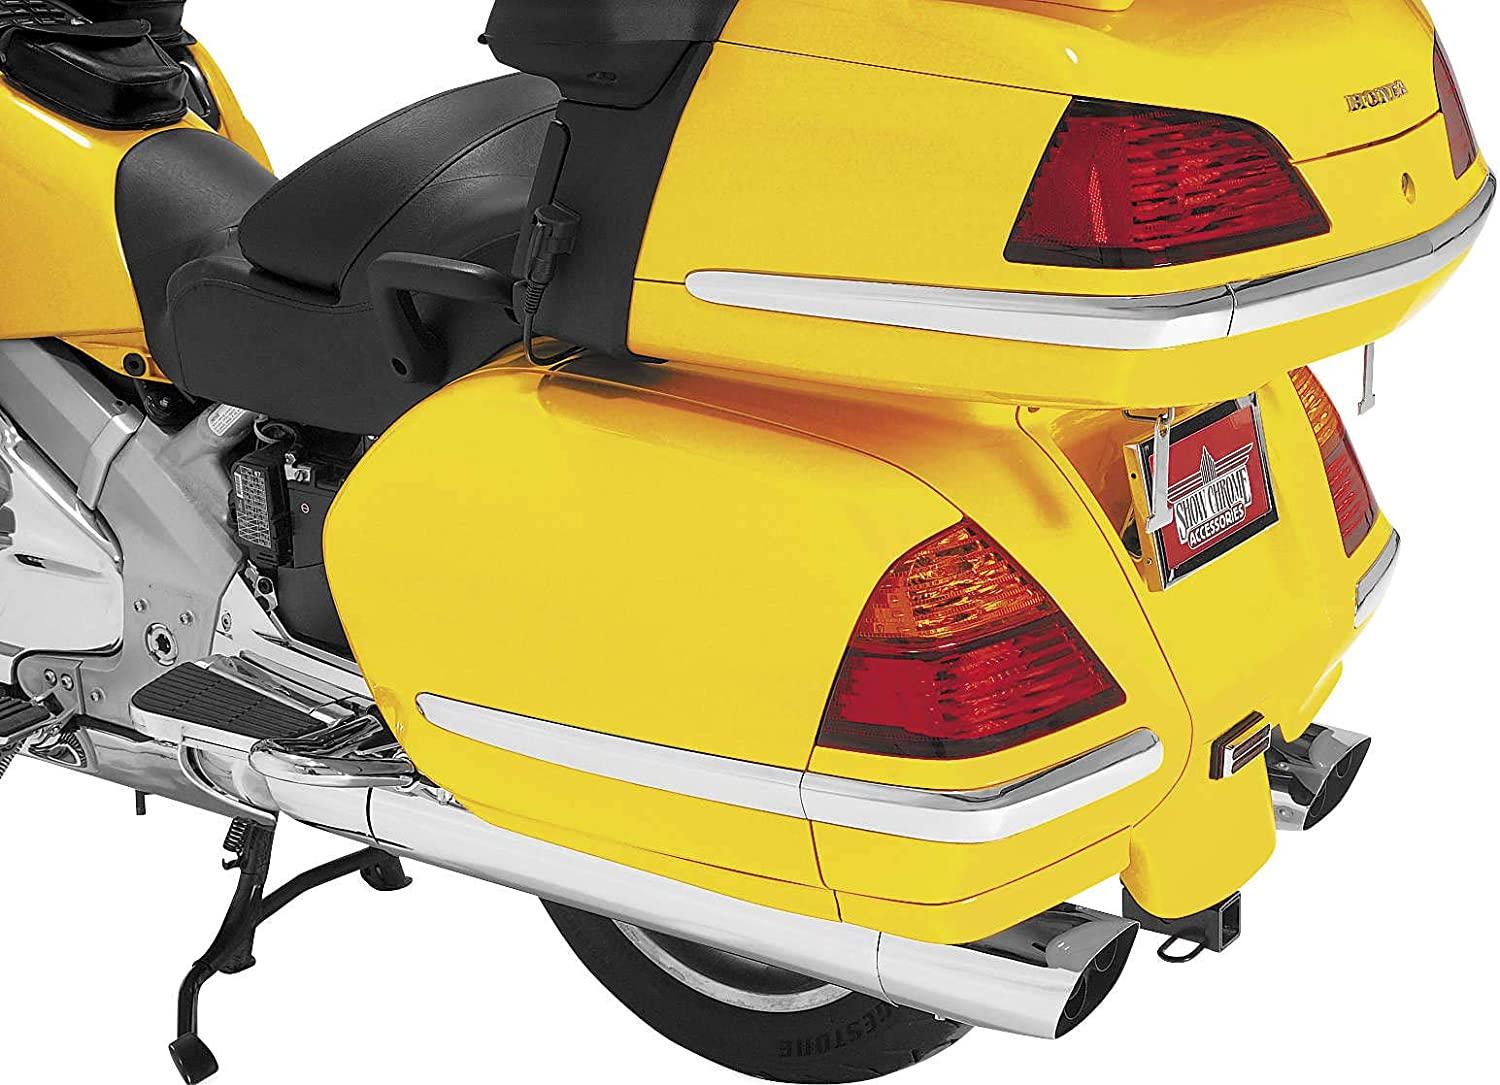 Saddlebag Molding Reservation Inserts Fits Show Free shipping anywhere in the nation 52 Gl1800 Chrome Honda 01-10